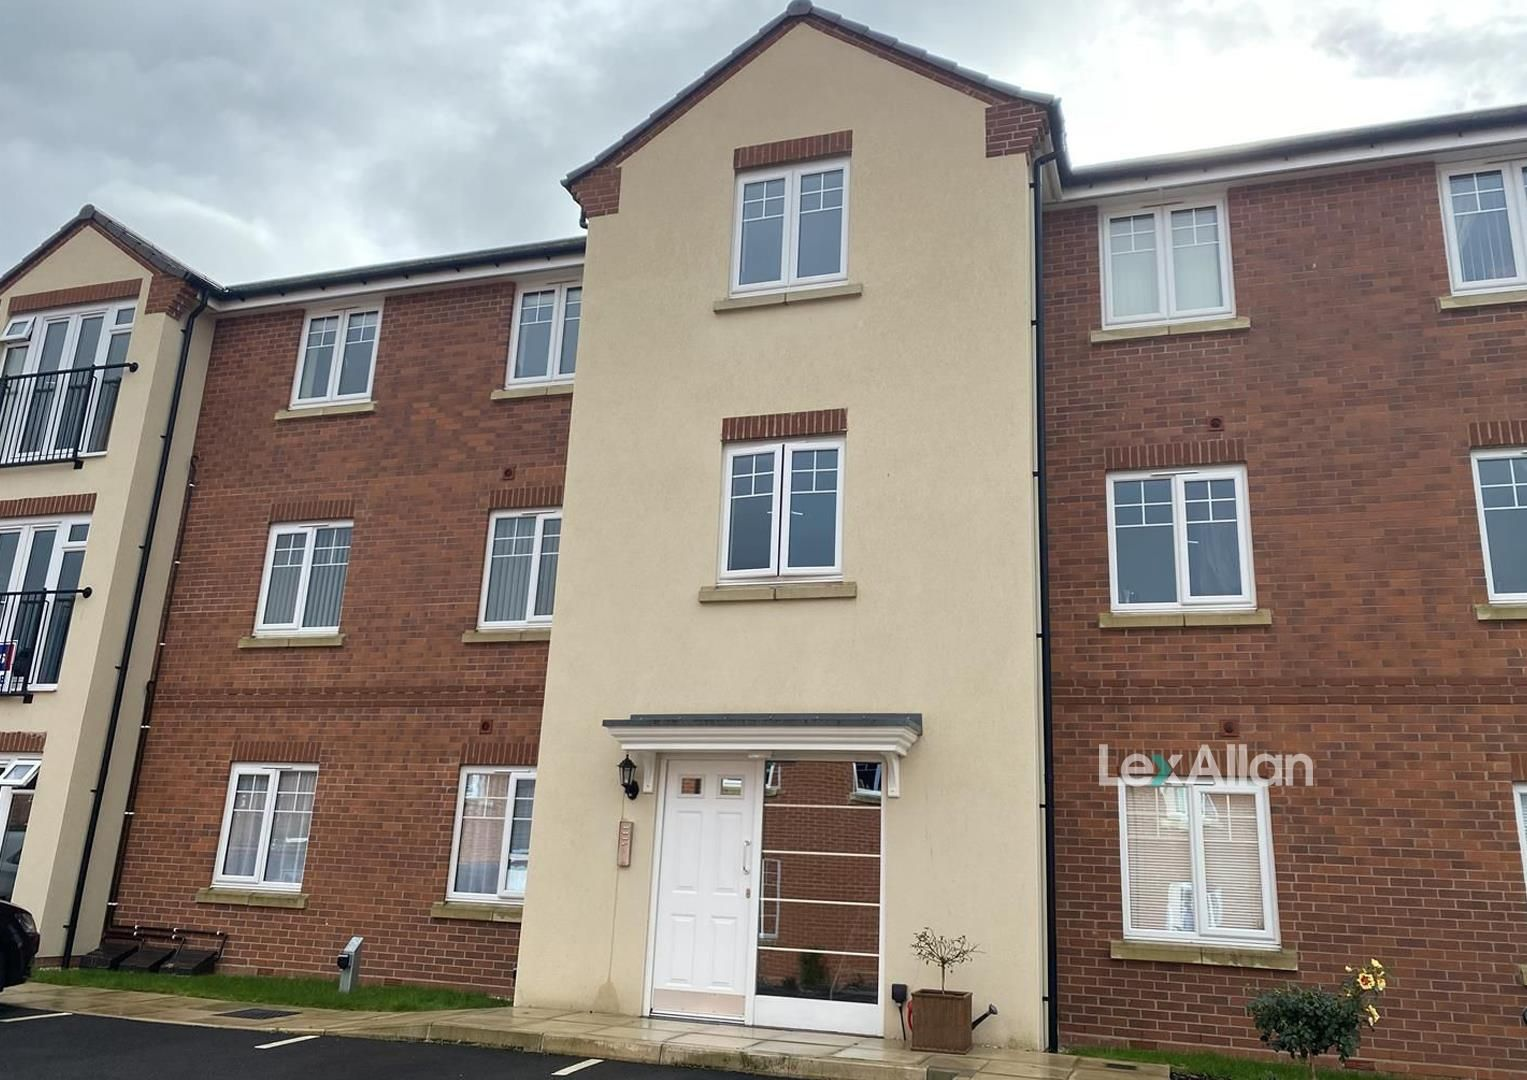 2 bed apartment for sale in Wollaston, DY8